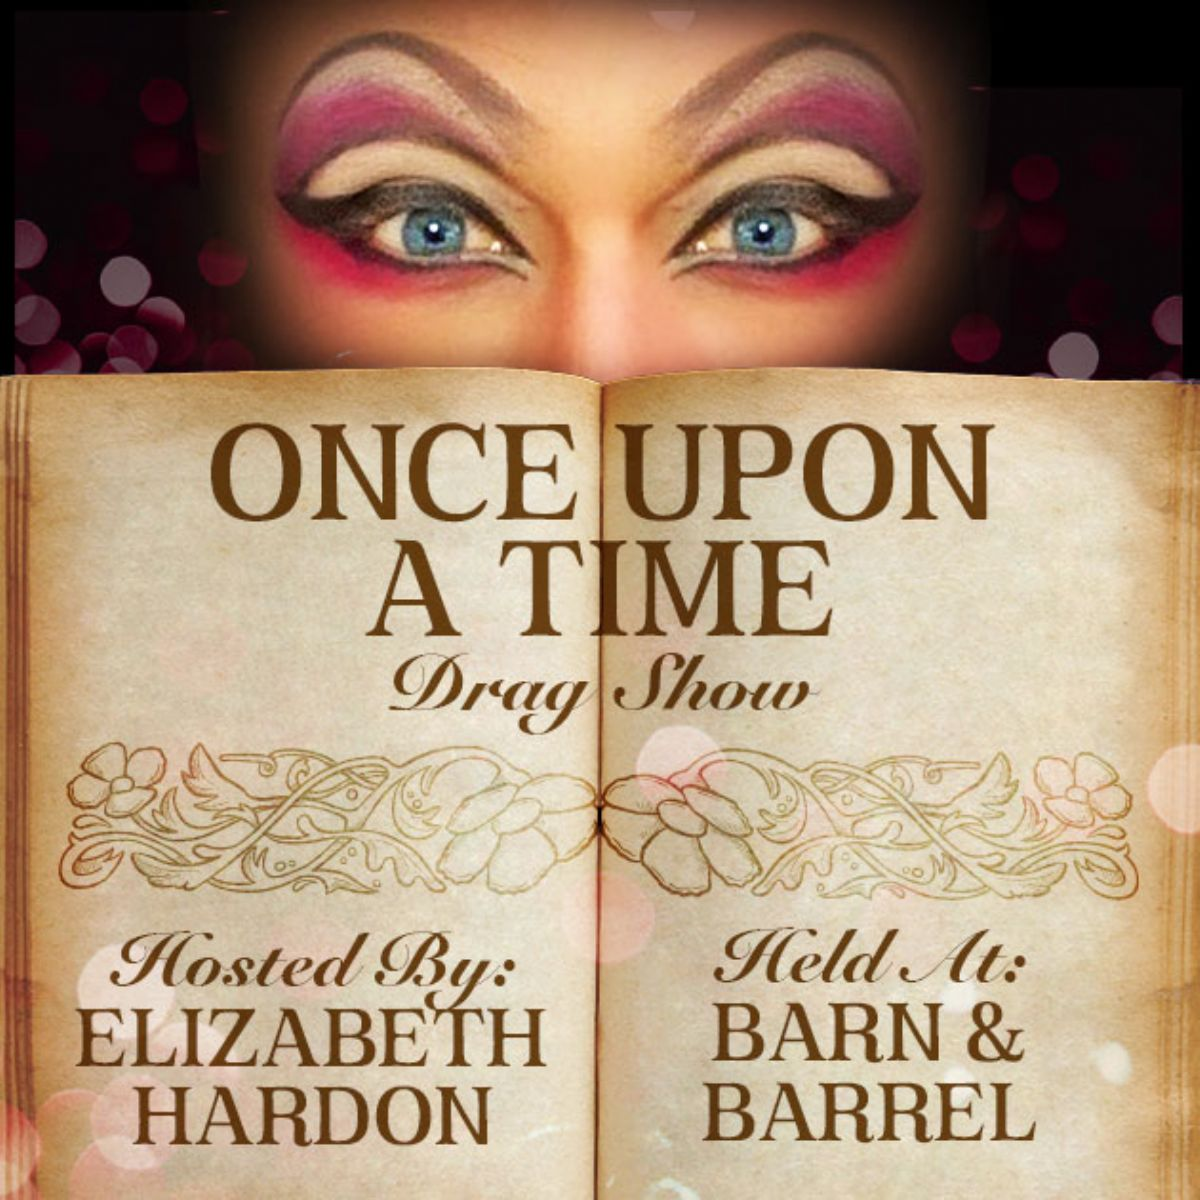 Once Upon A Time Drag Show